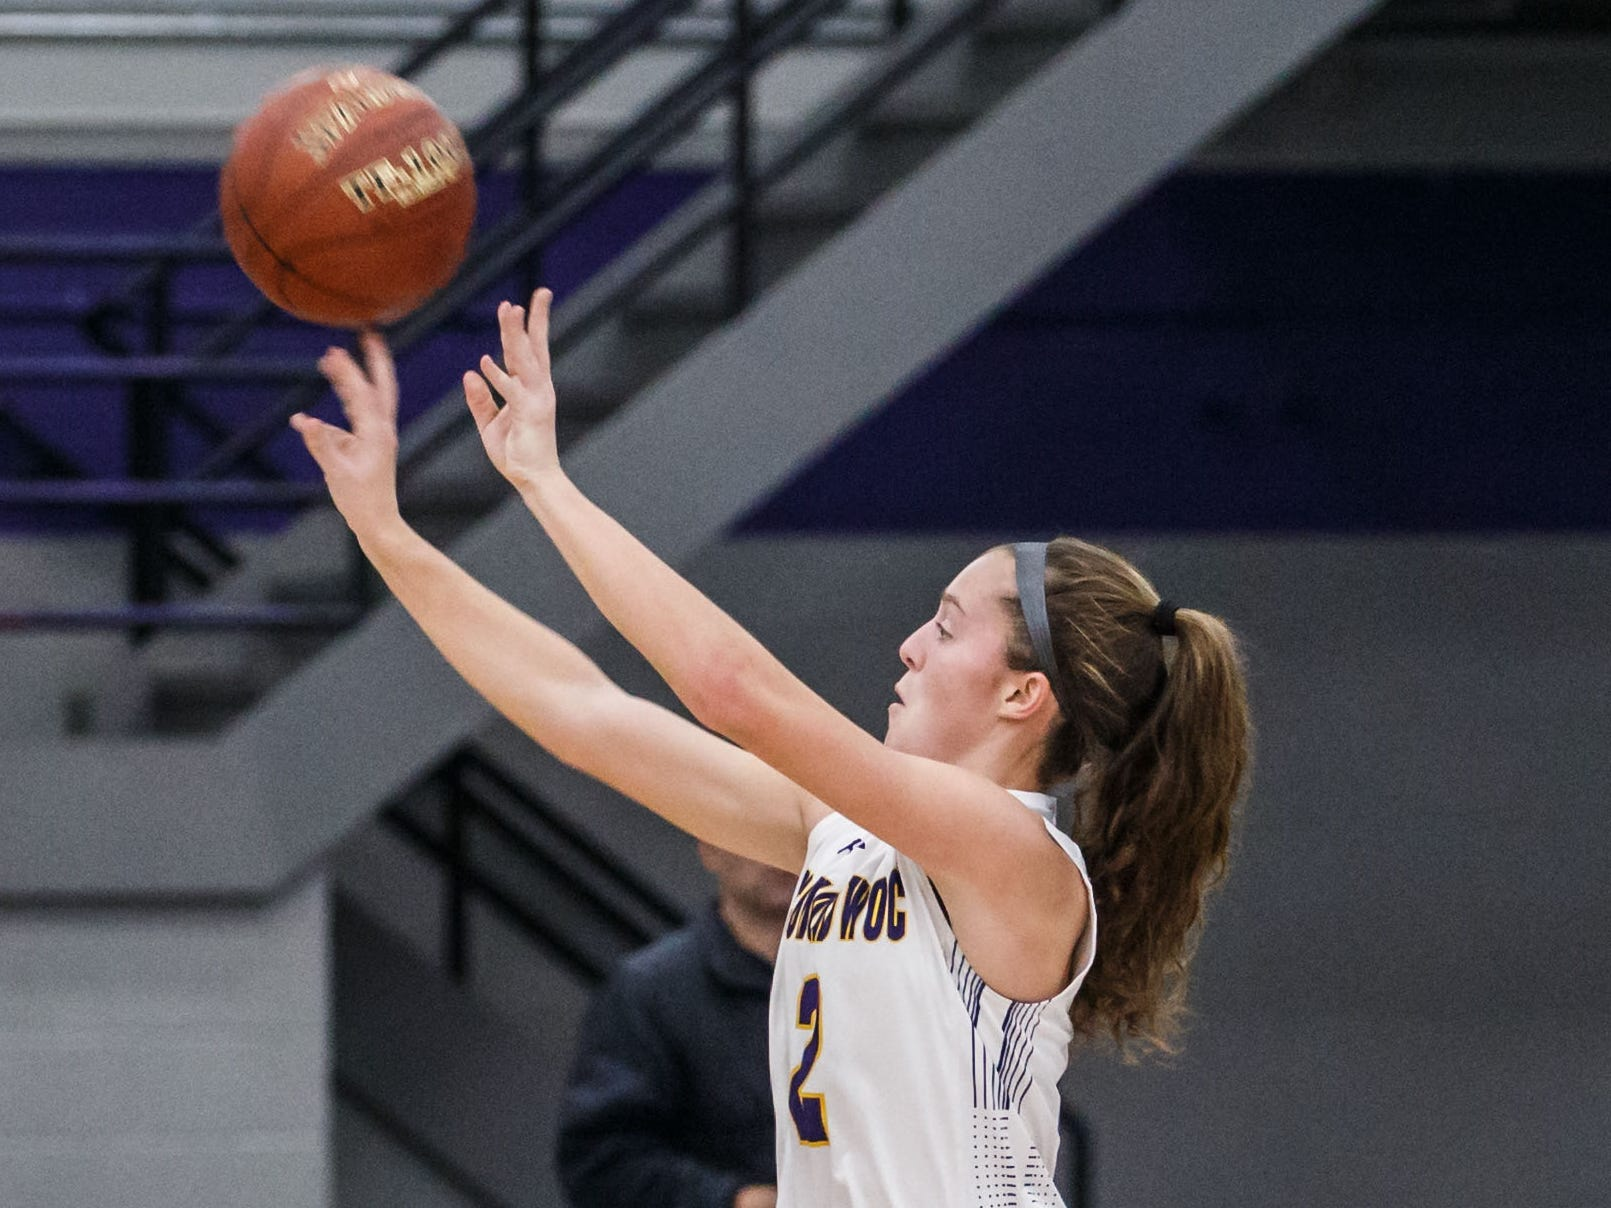 Oconomowoc sophomore Elizabeth Cleary (2) elevates for three during the game at home against Franklin on Monday, Nov. 19, 2018.